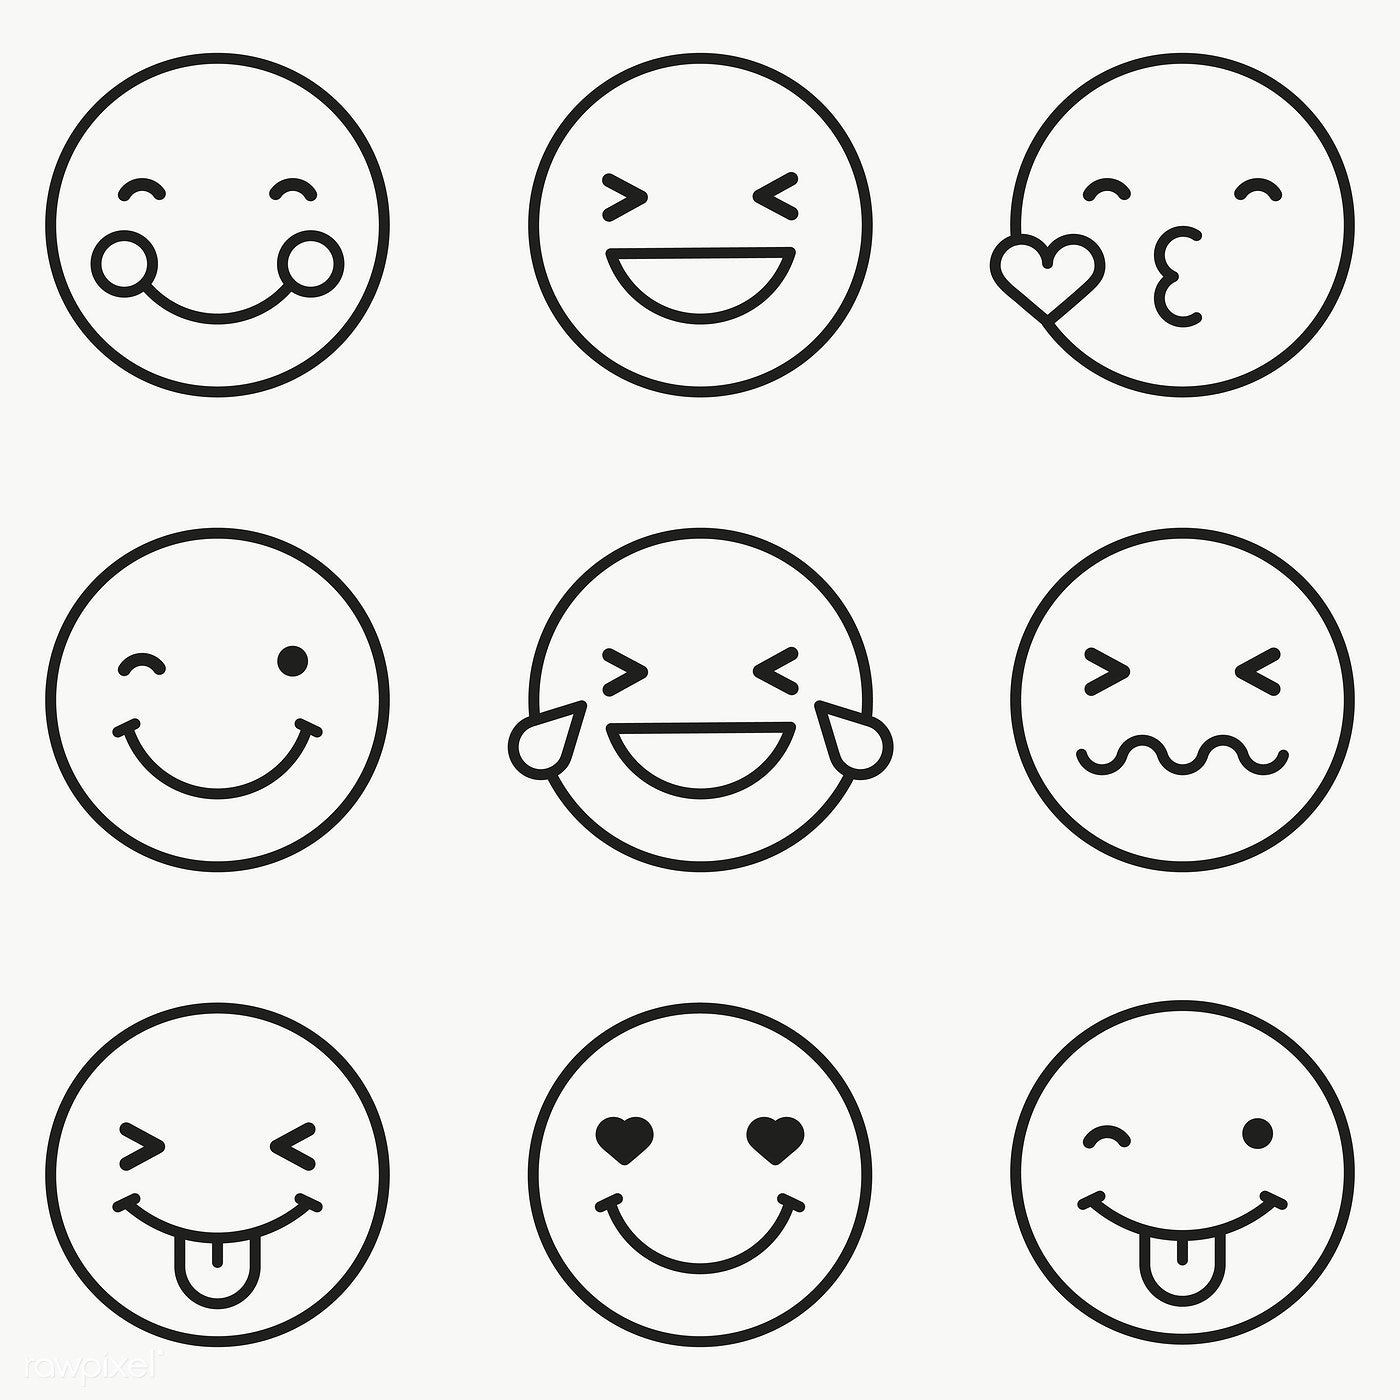 Download Premium Png Of Black Outline Emoticon Set Isolated On Transparent Emoticon Emoji Drawing Emoji Drawings